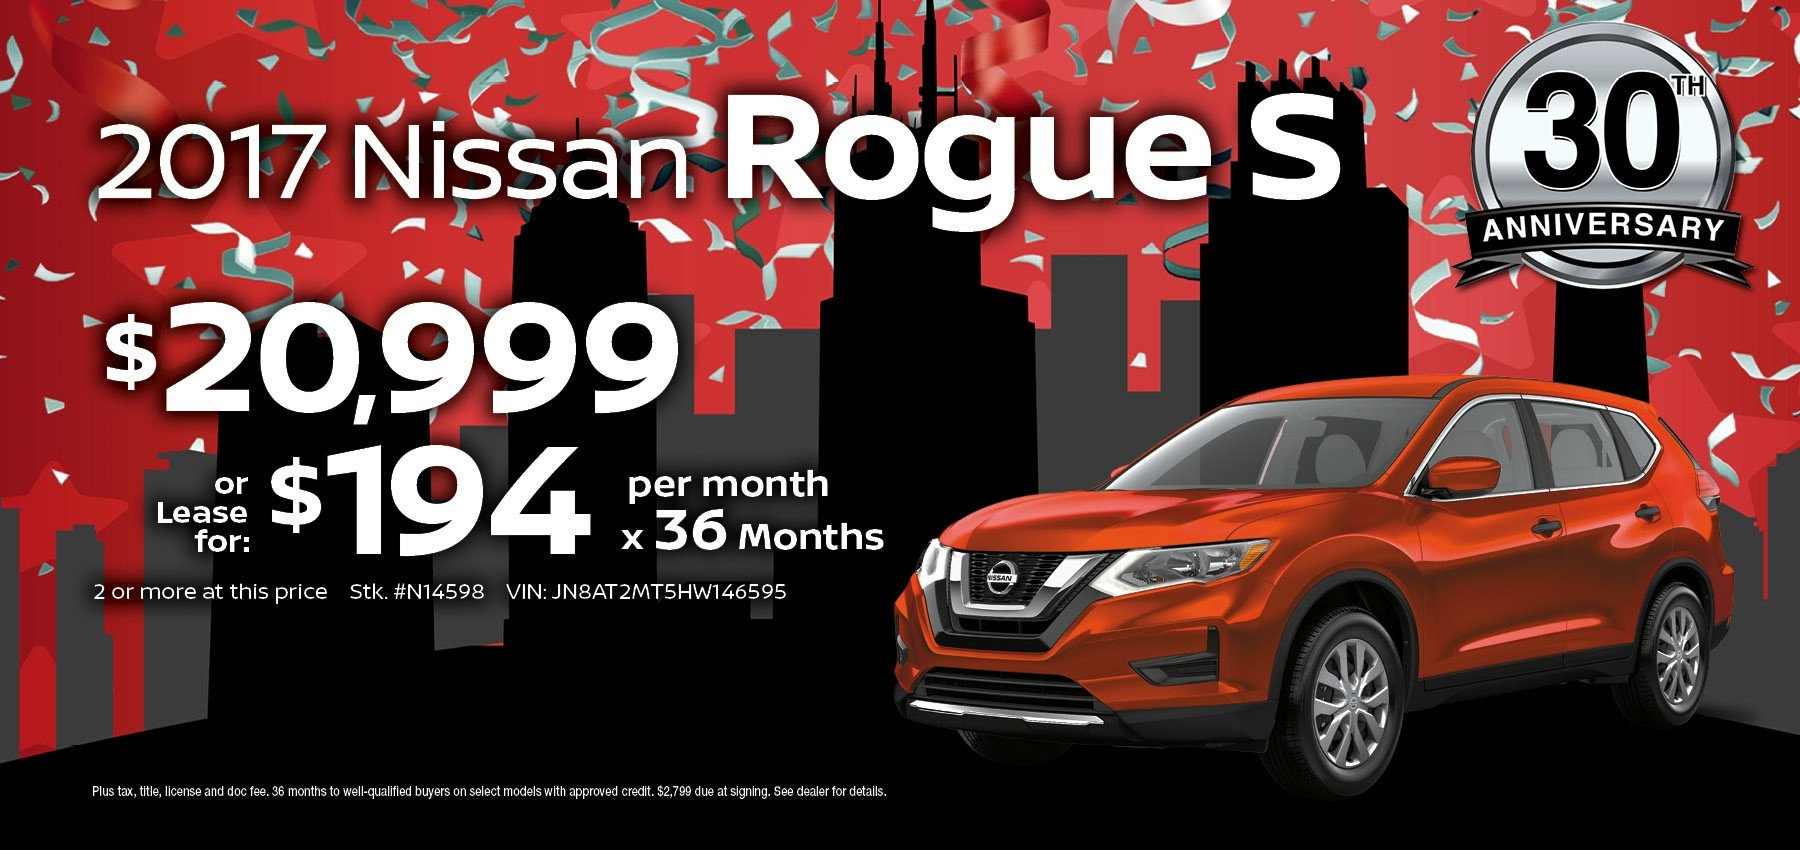 2017 Nissan Rogue July Sale at Berman Nissan of Chicago